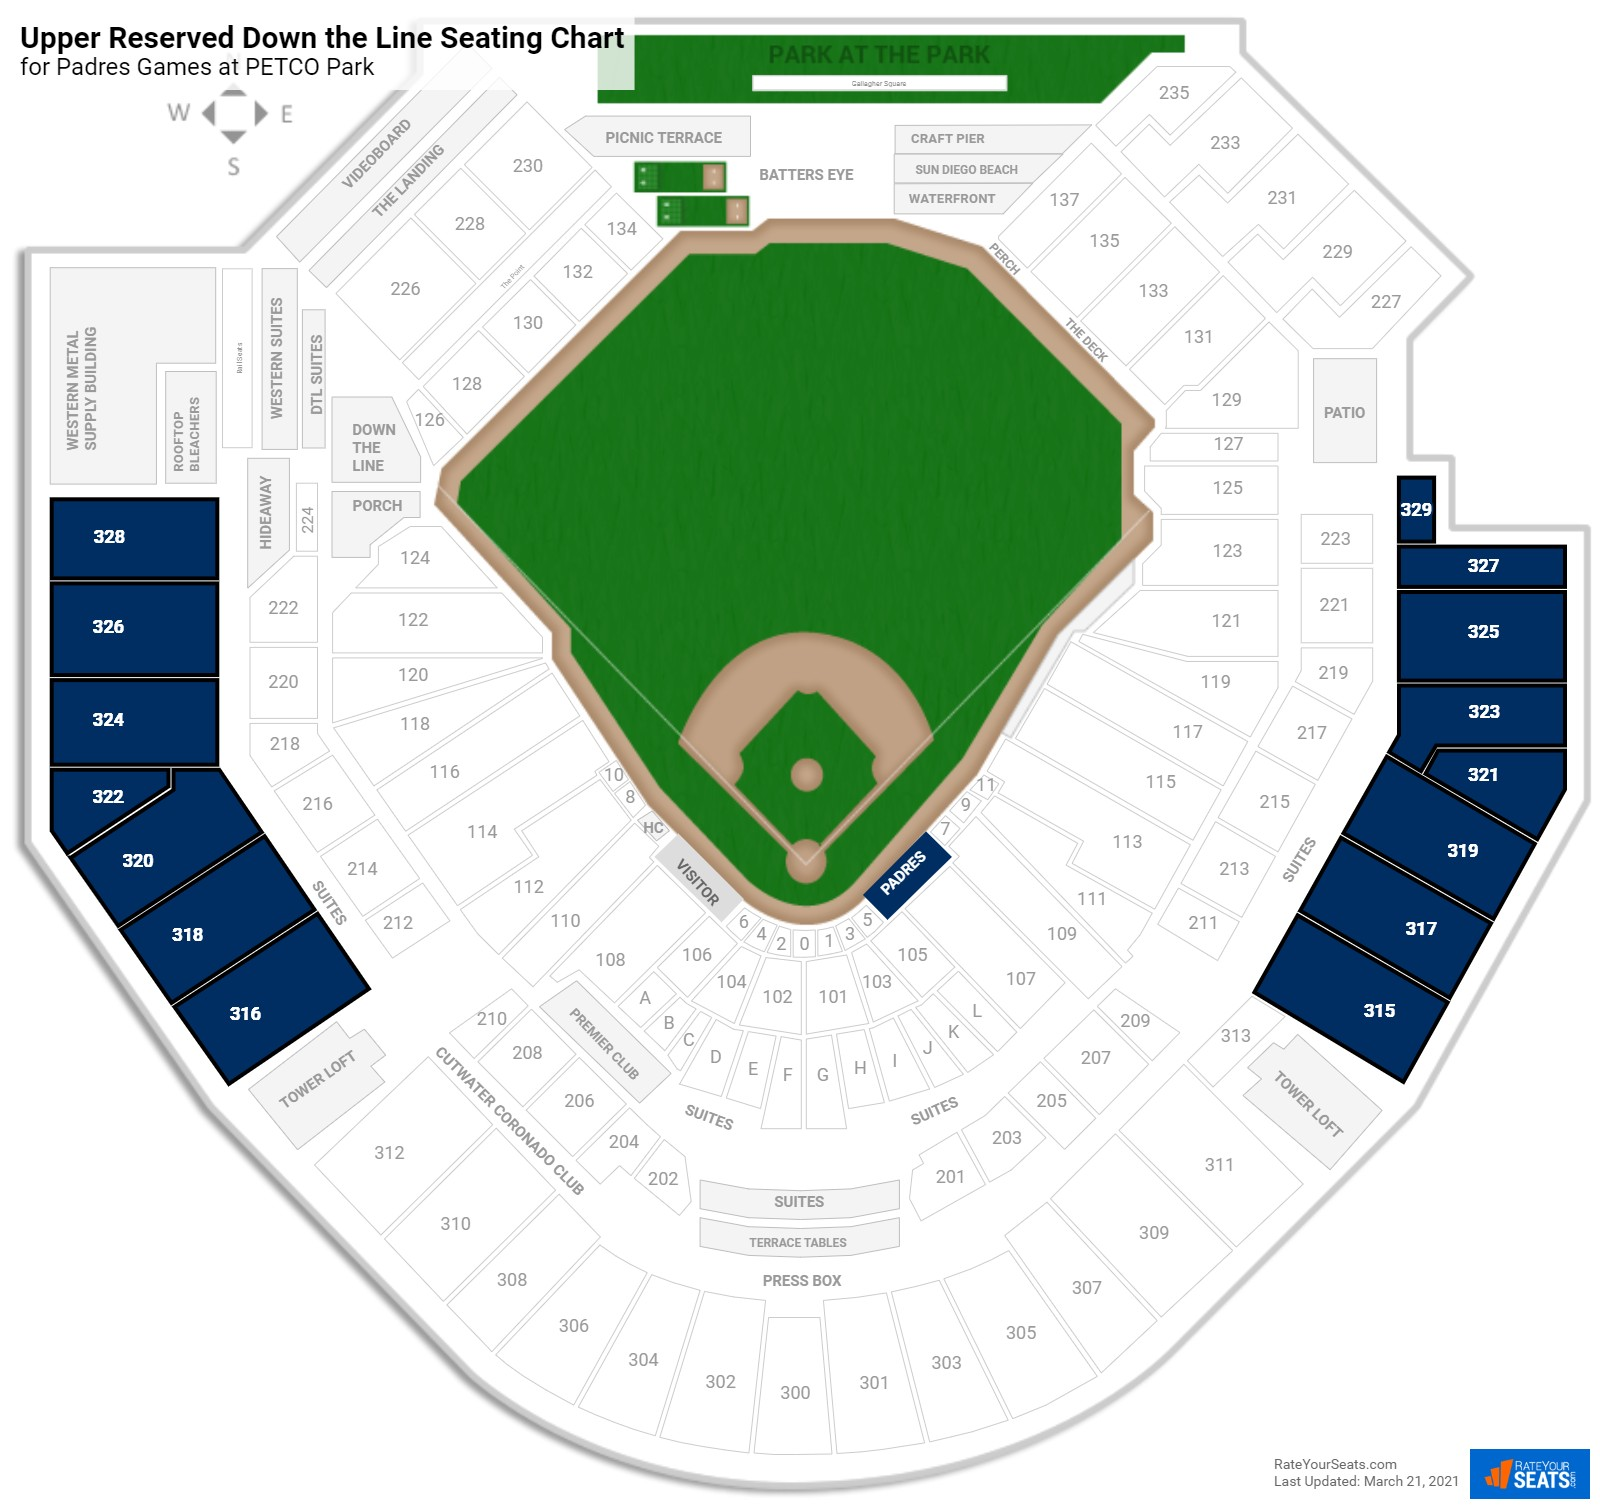 PETCO Park Upper Reserved Down the Line seating chart